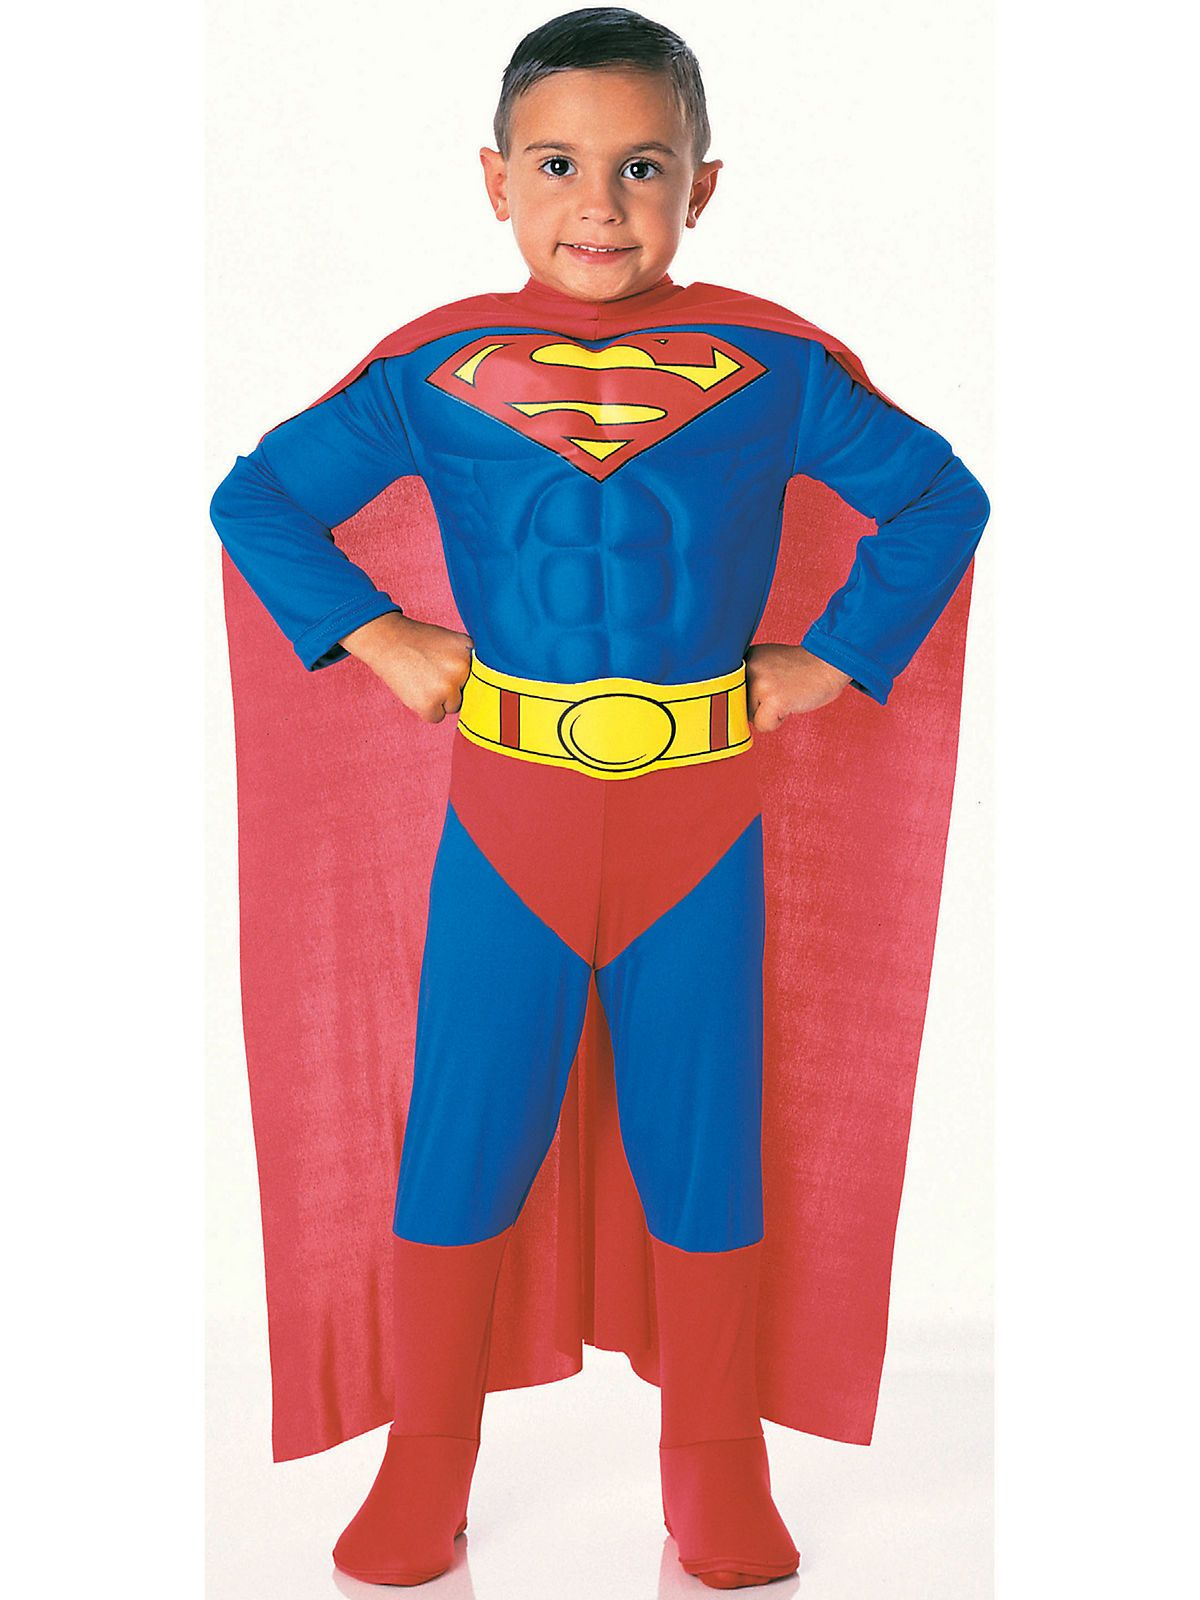 4c9e6b94ed82 Deluxe Baby Muscle Superman Costume - Infant & Toddler Superman Costumes